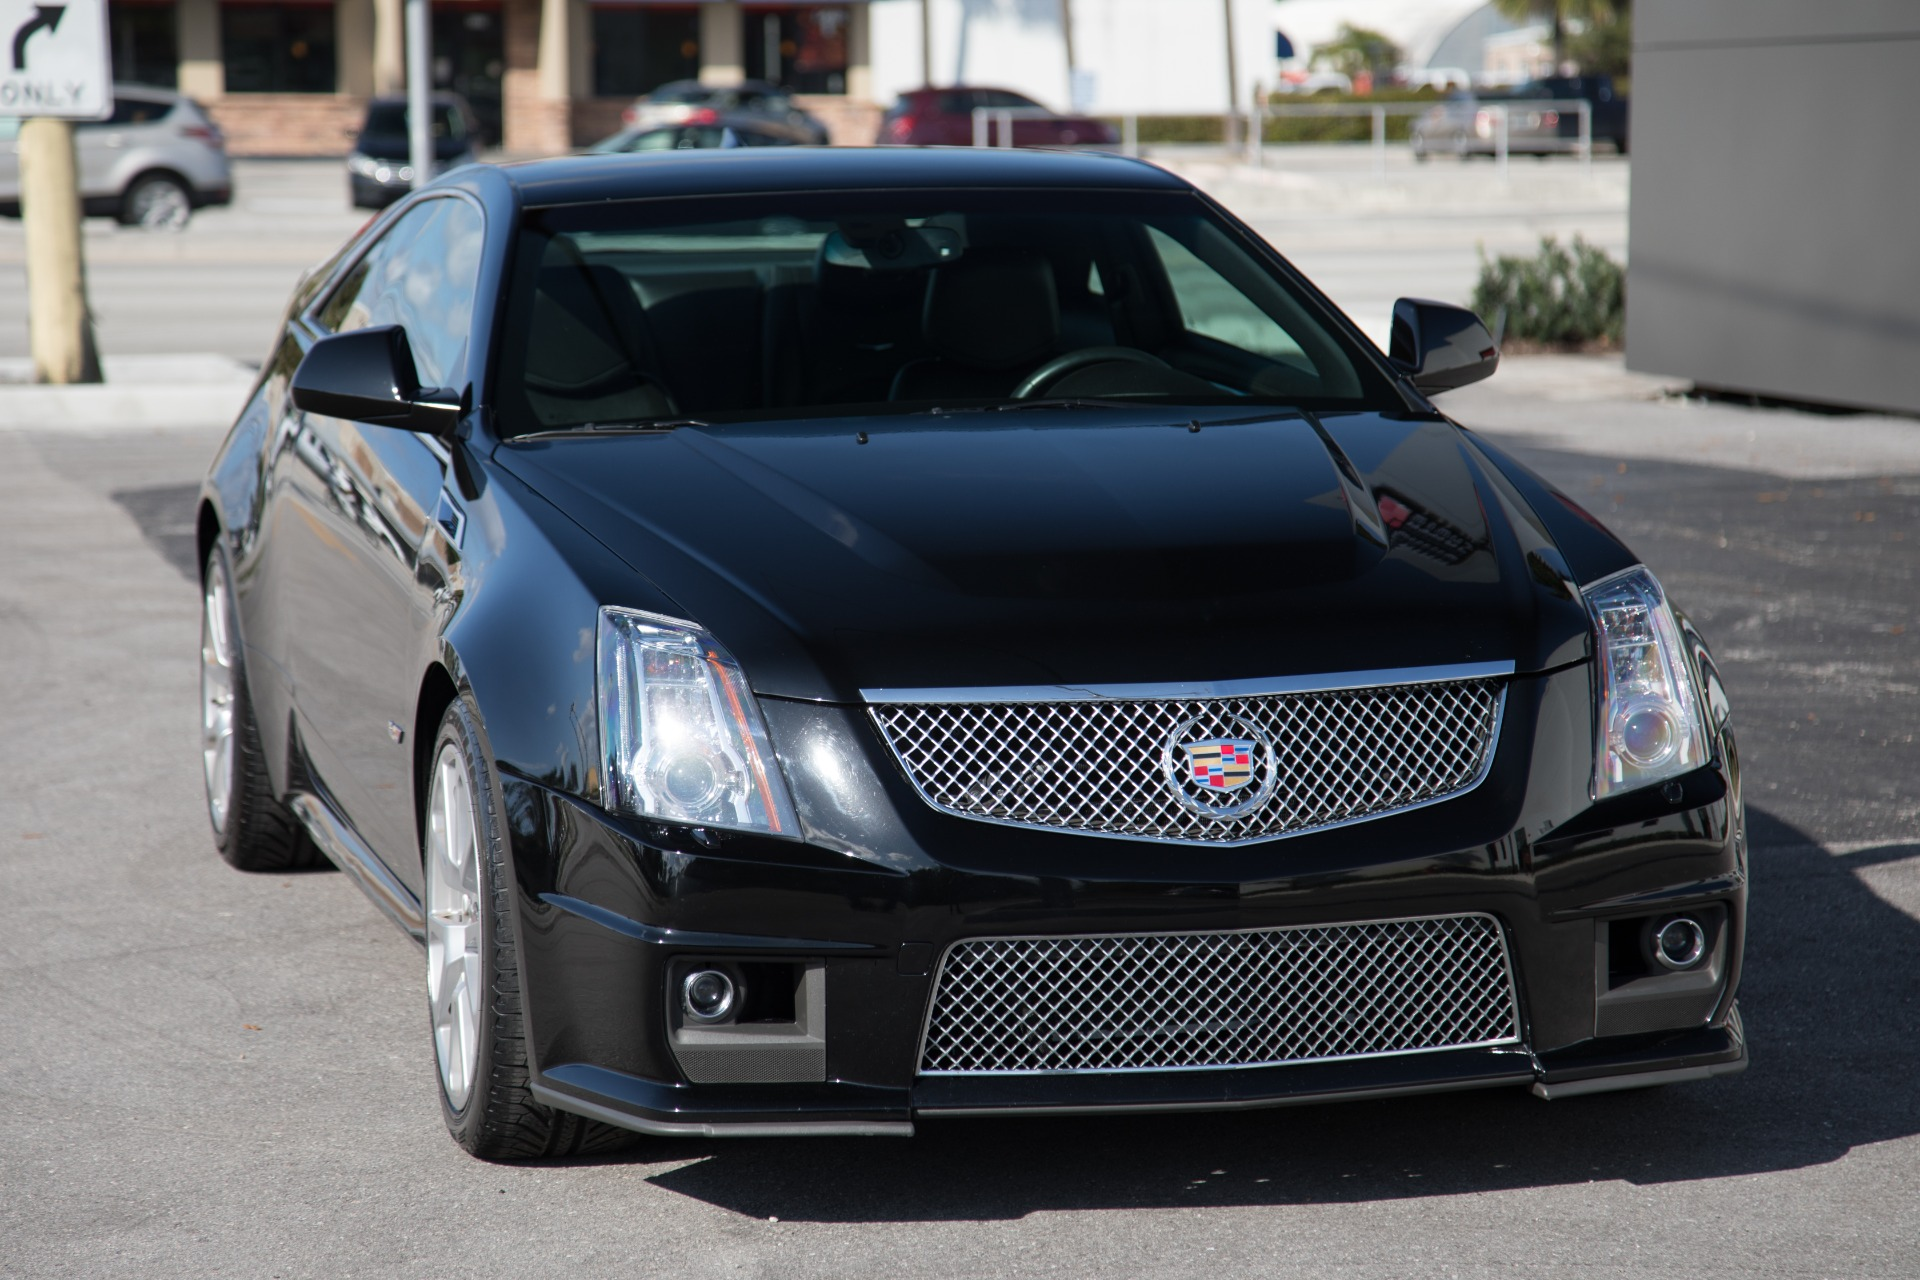 Cadillac Cts Coupe For Sale >> Used 2014 Cadillac CTS-V For Sale ($38,900) | Marino ...